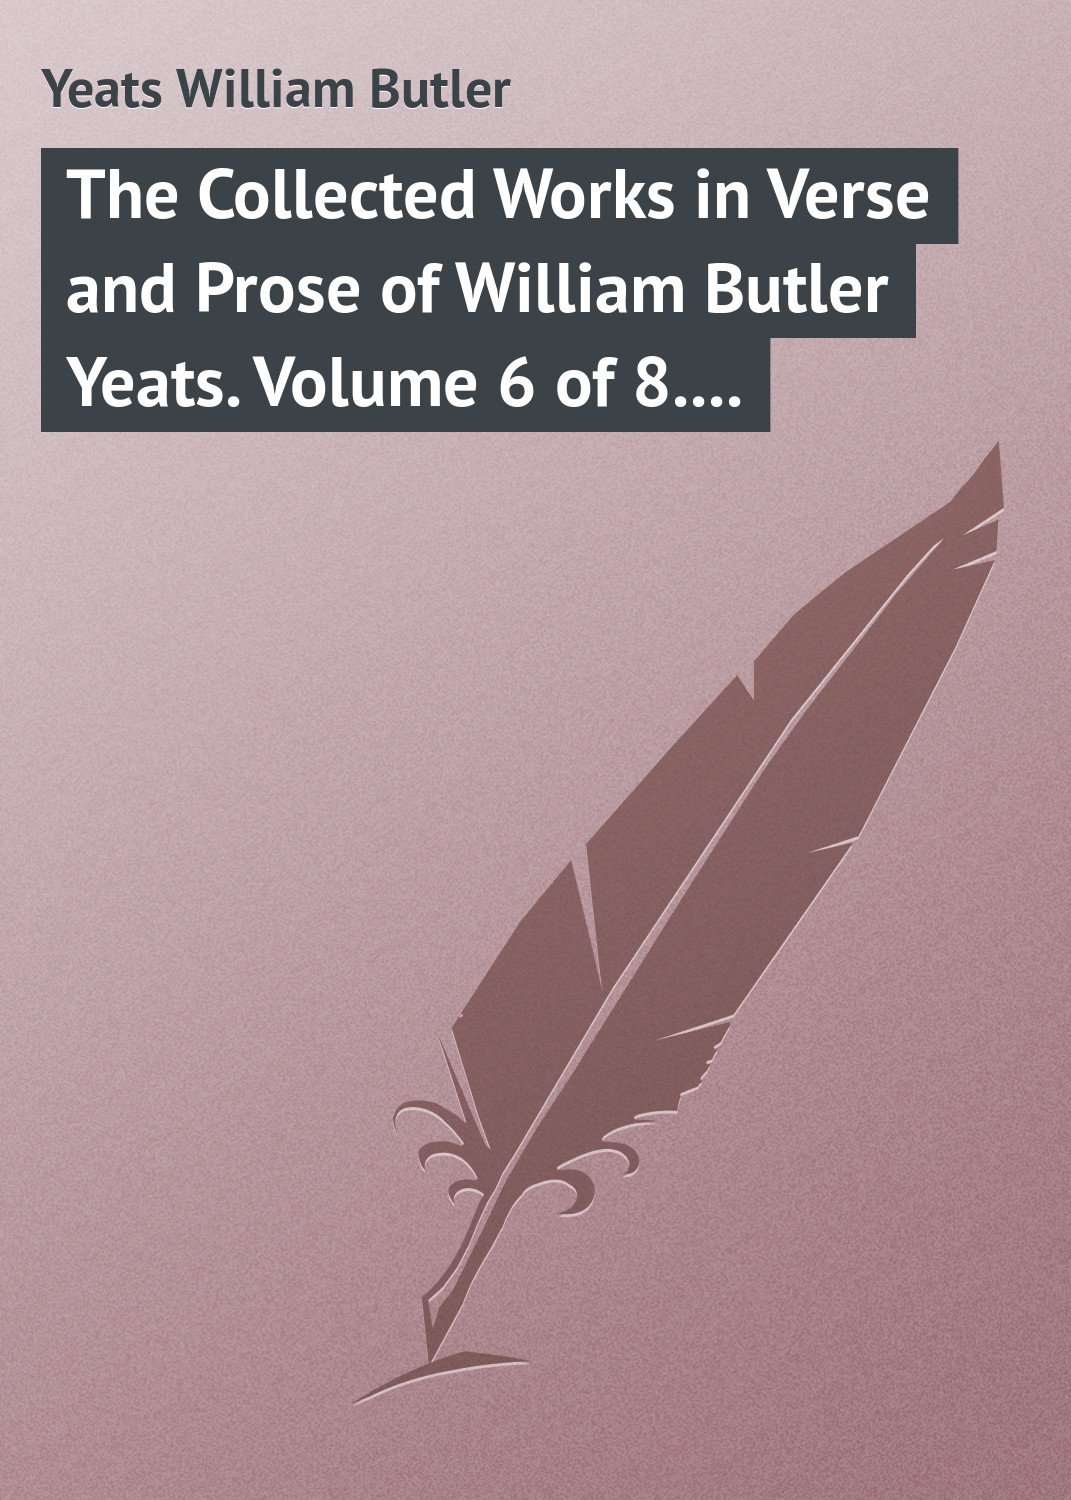 William Butler Yeats The Collected Works in Verse and Prose of William Butler Yeats. Volume 6 of 8. Ideas of Good and Evil william butler yeats the tables of the law